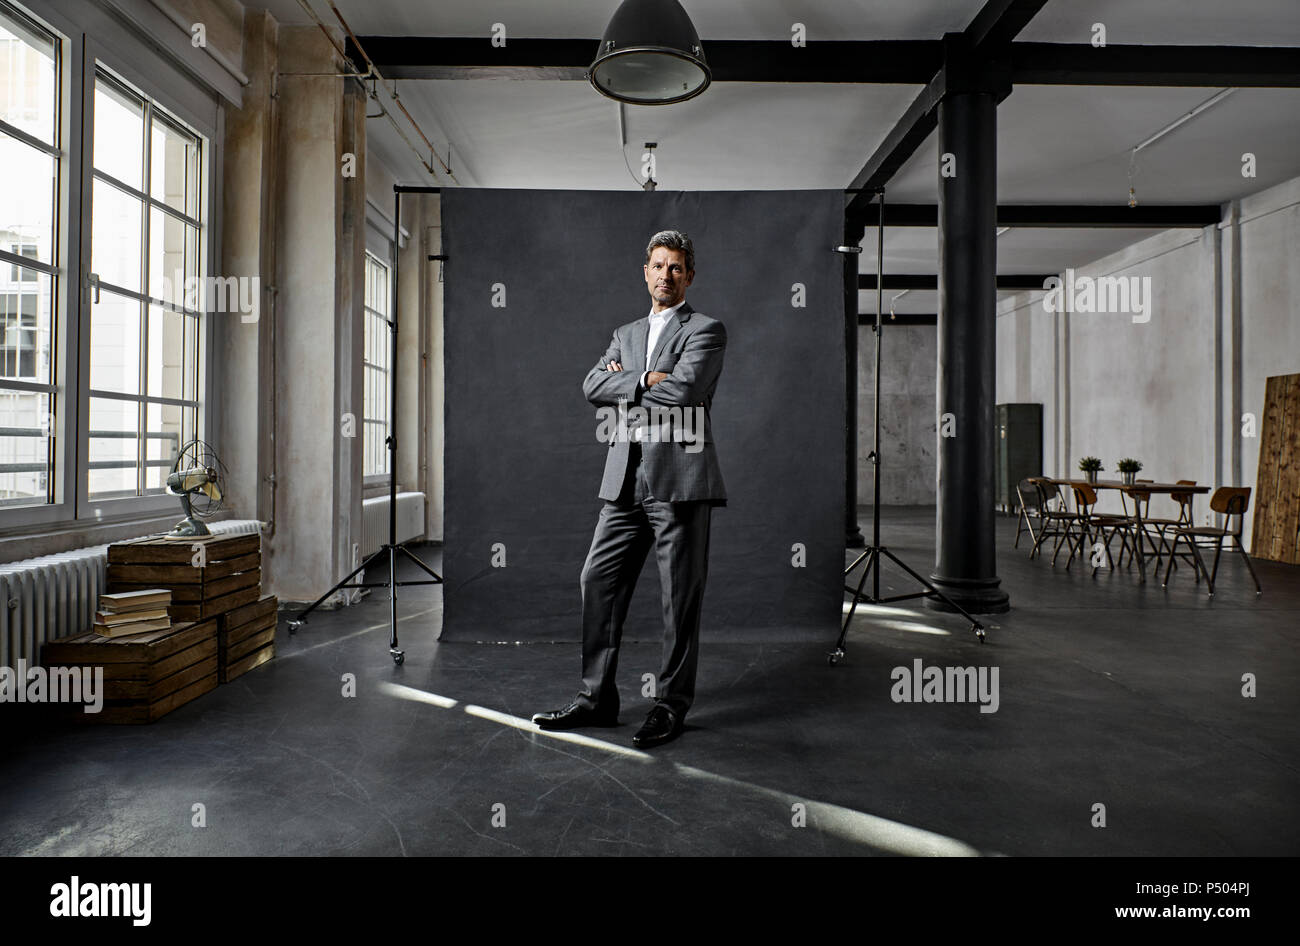 Portrait of mature businessman in front of black backdrop in loft - Stock Image